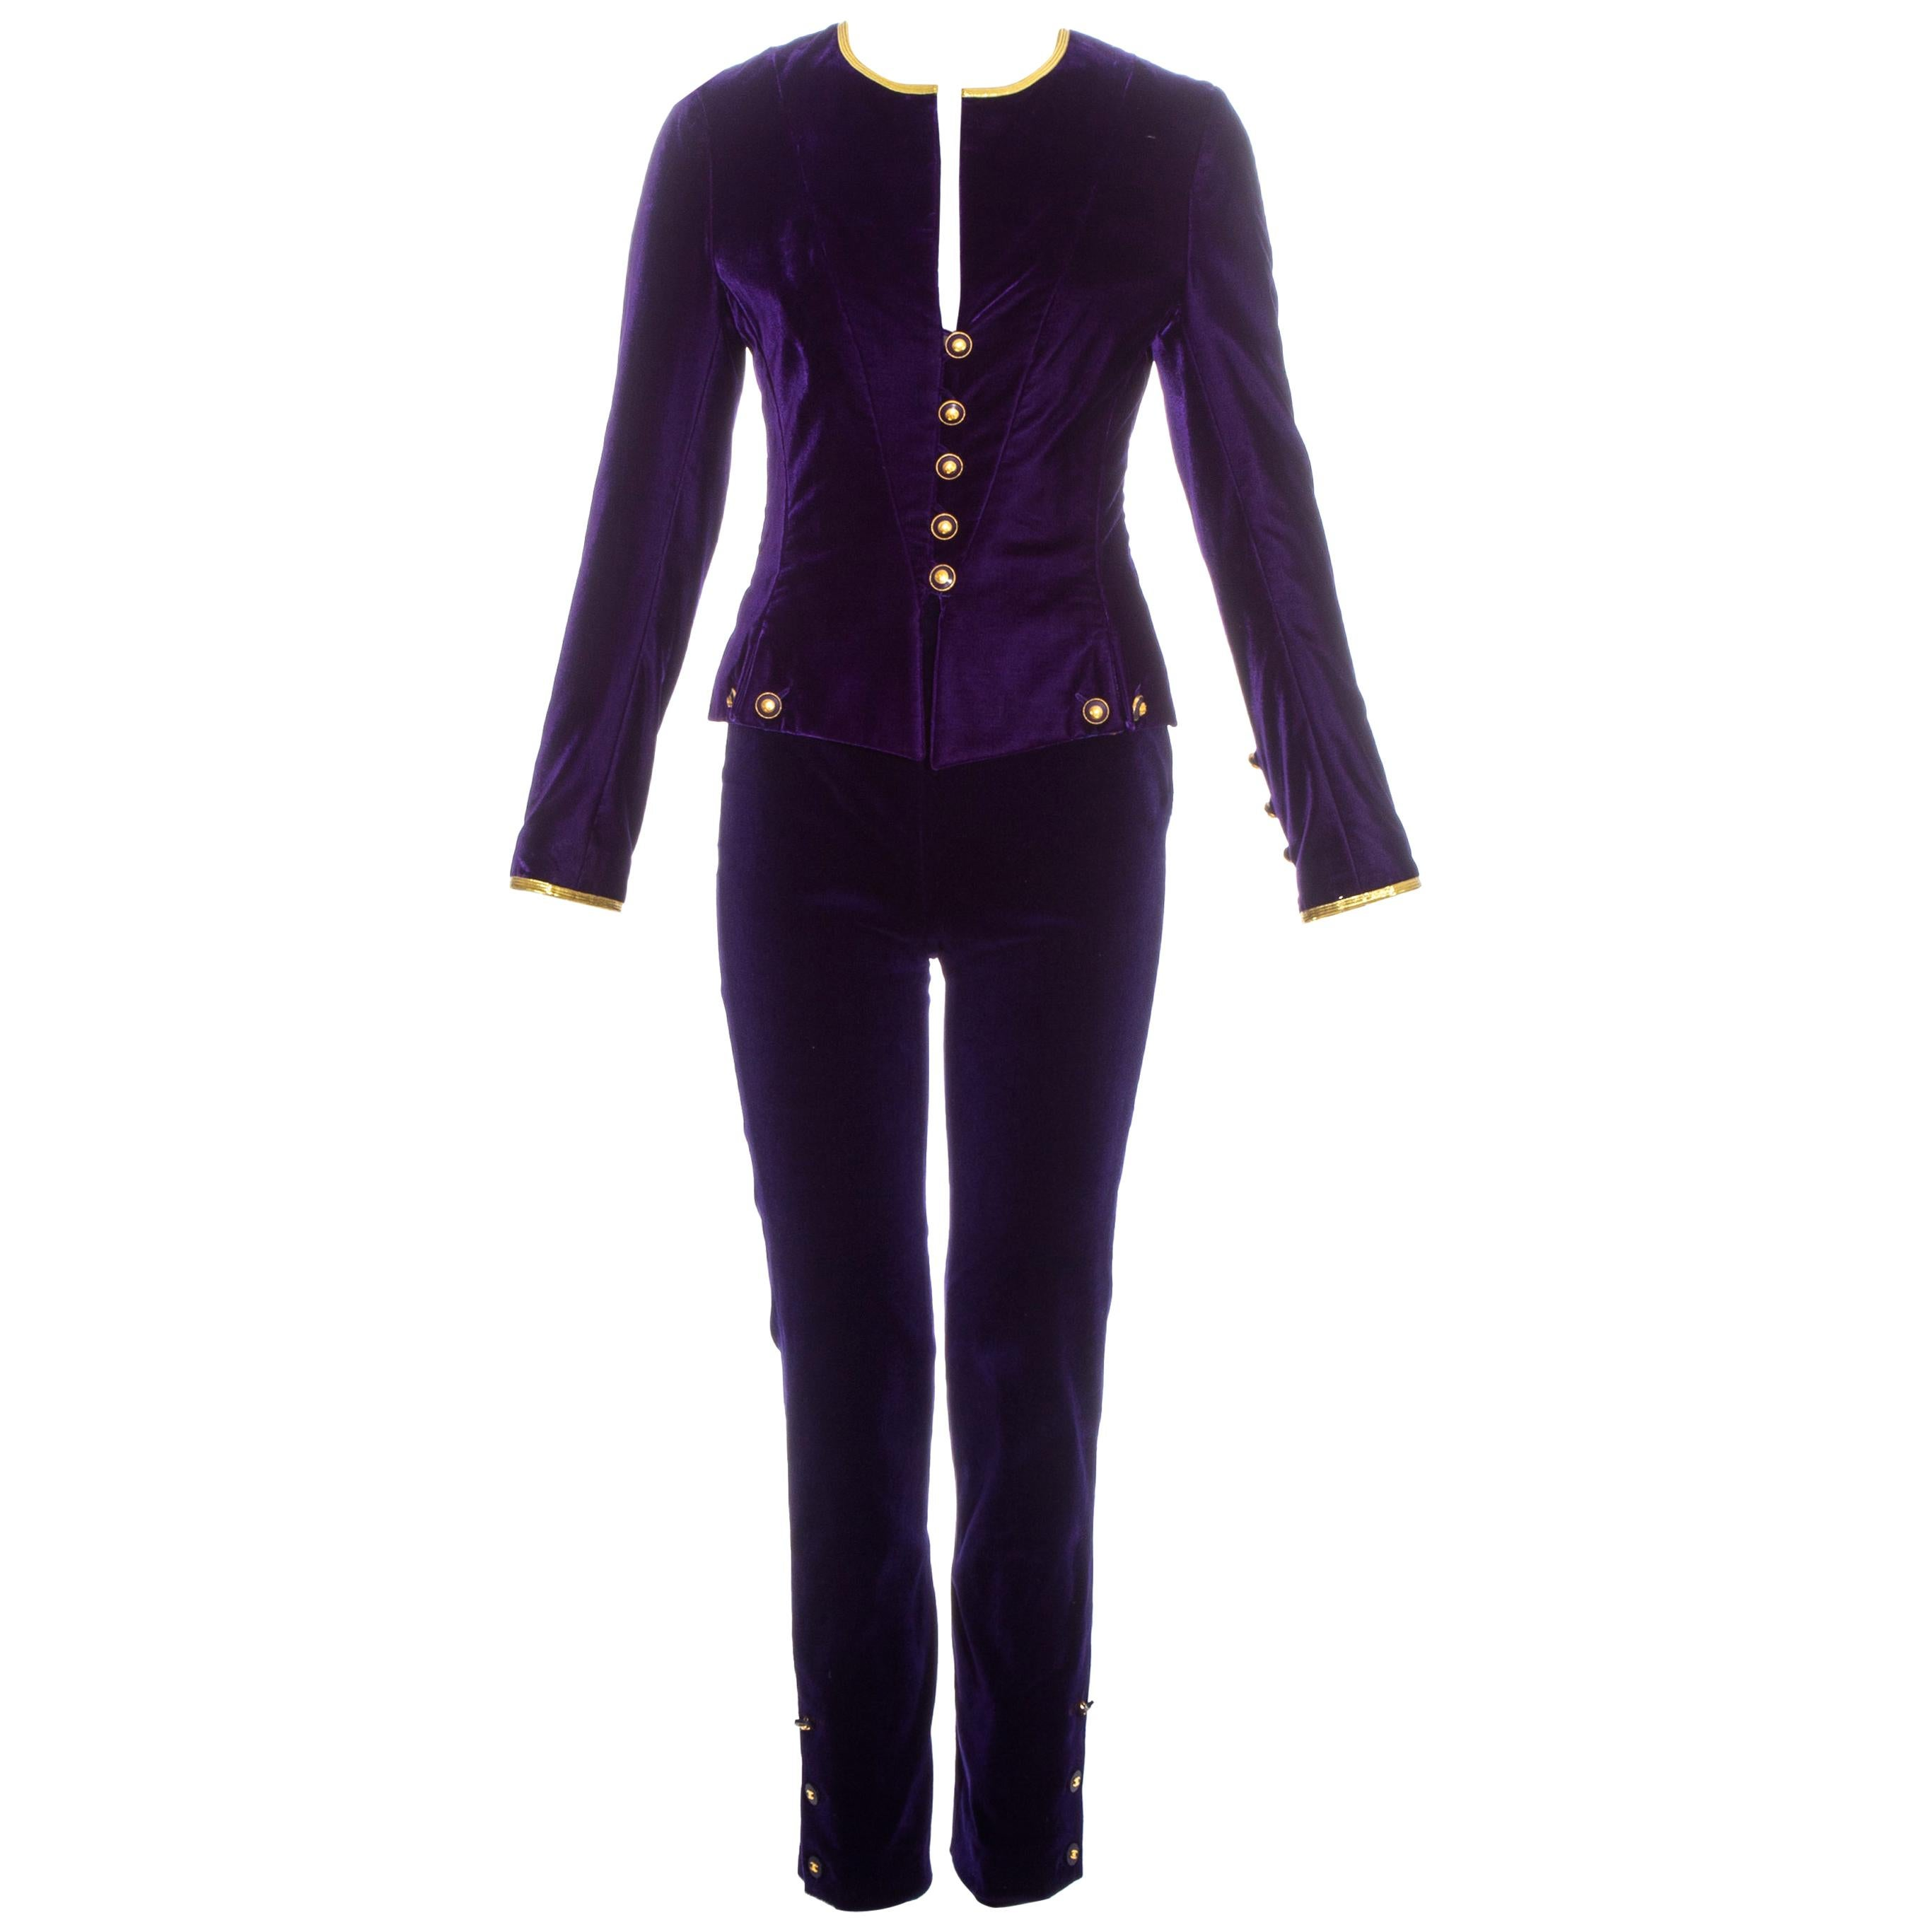 Chanel by Karl Lagerfeld purple velvet pant suit with gold trim, fw 1993